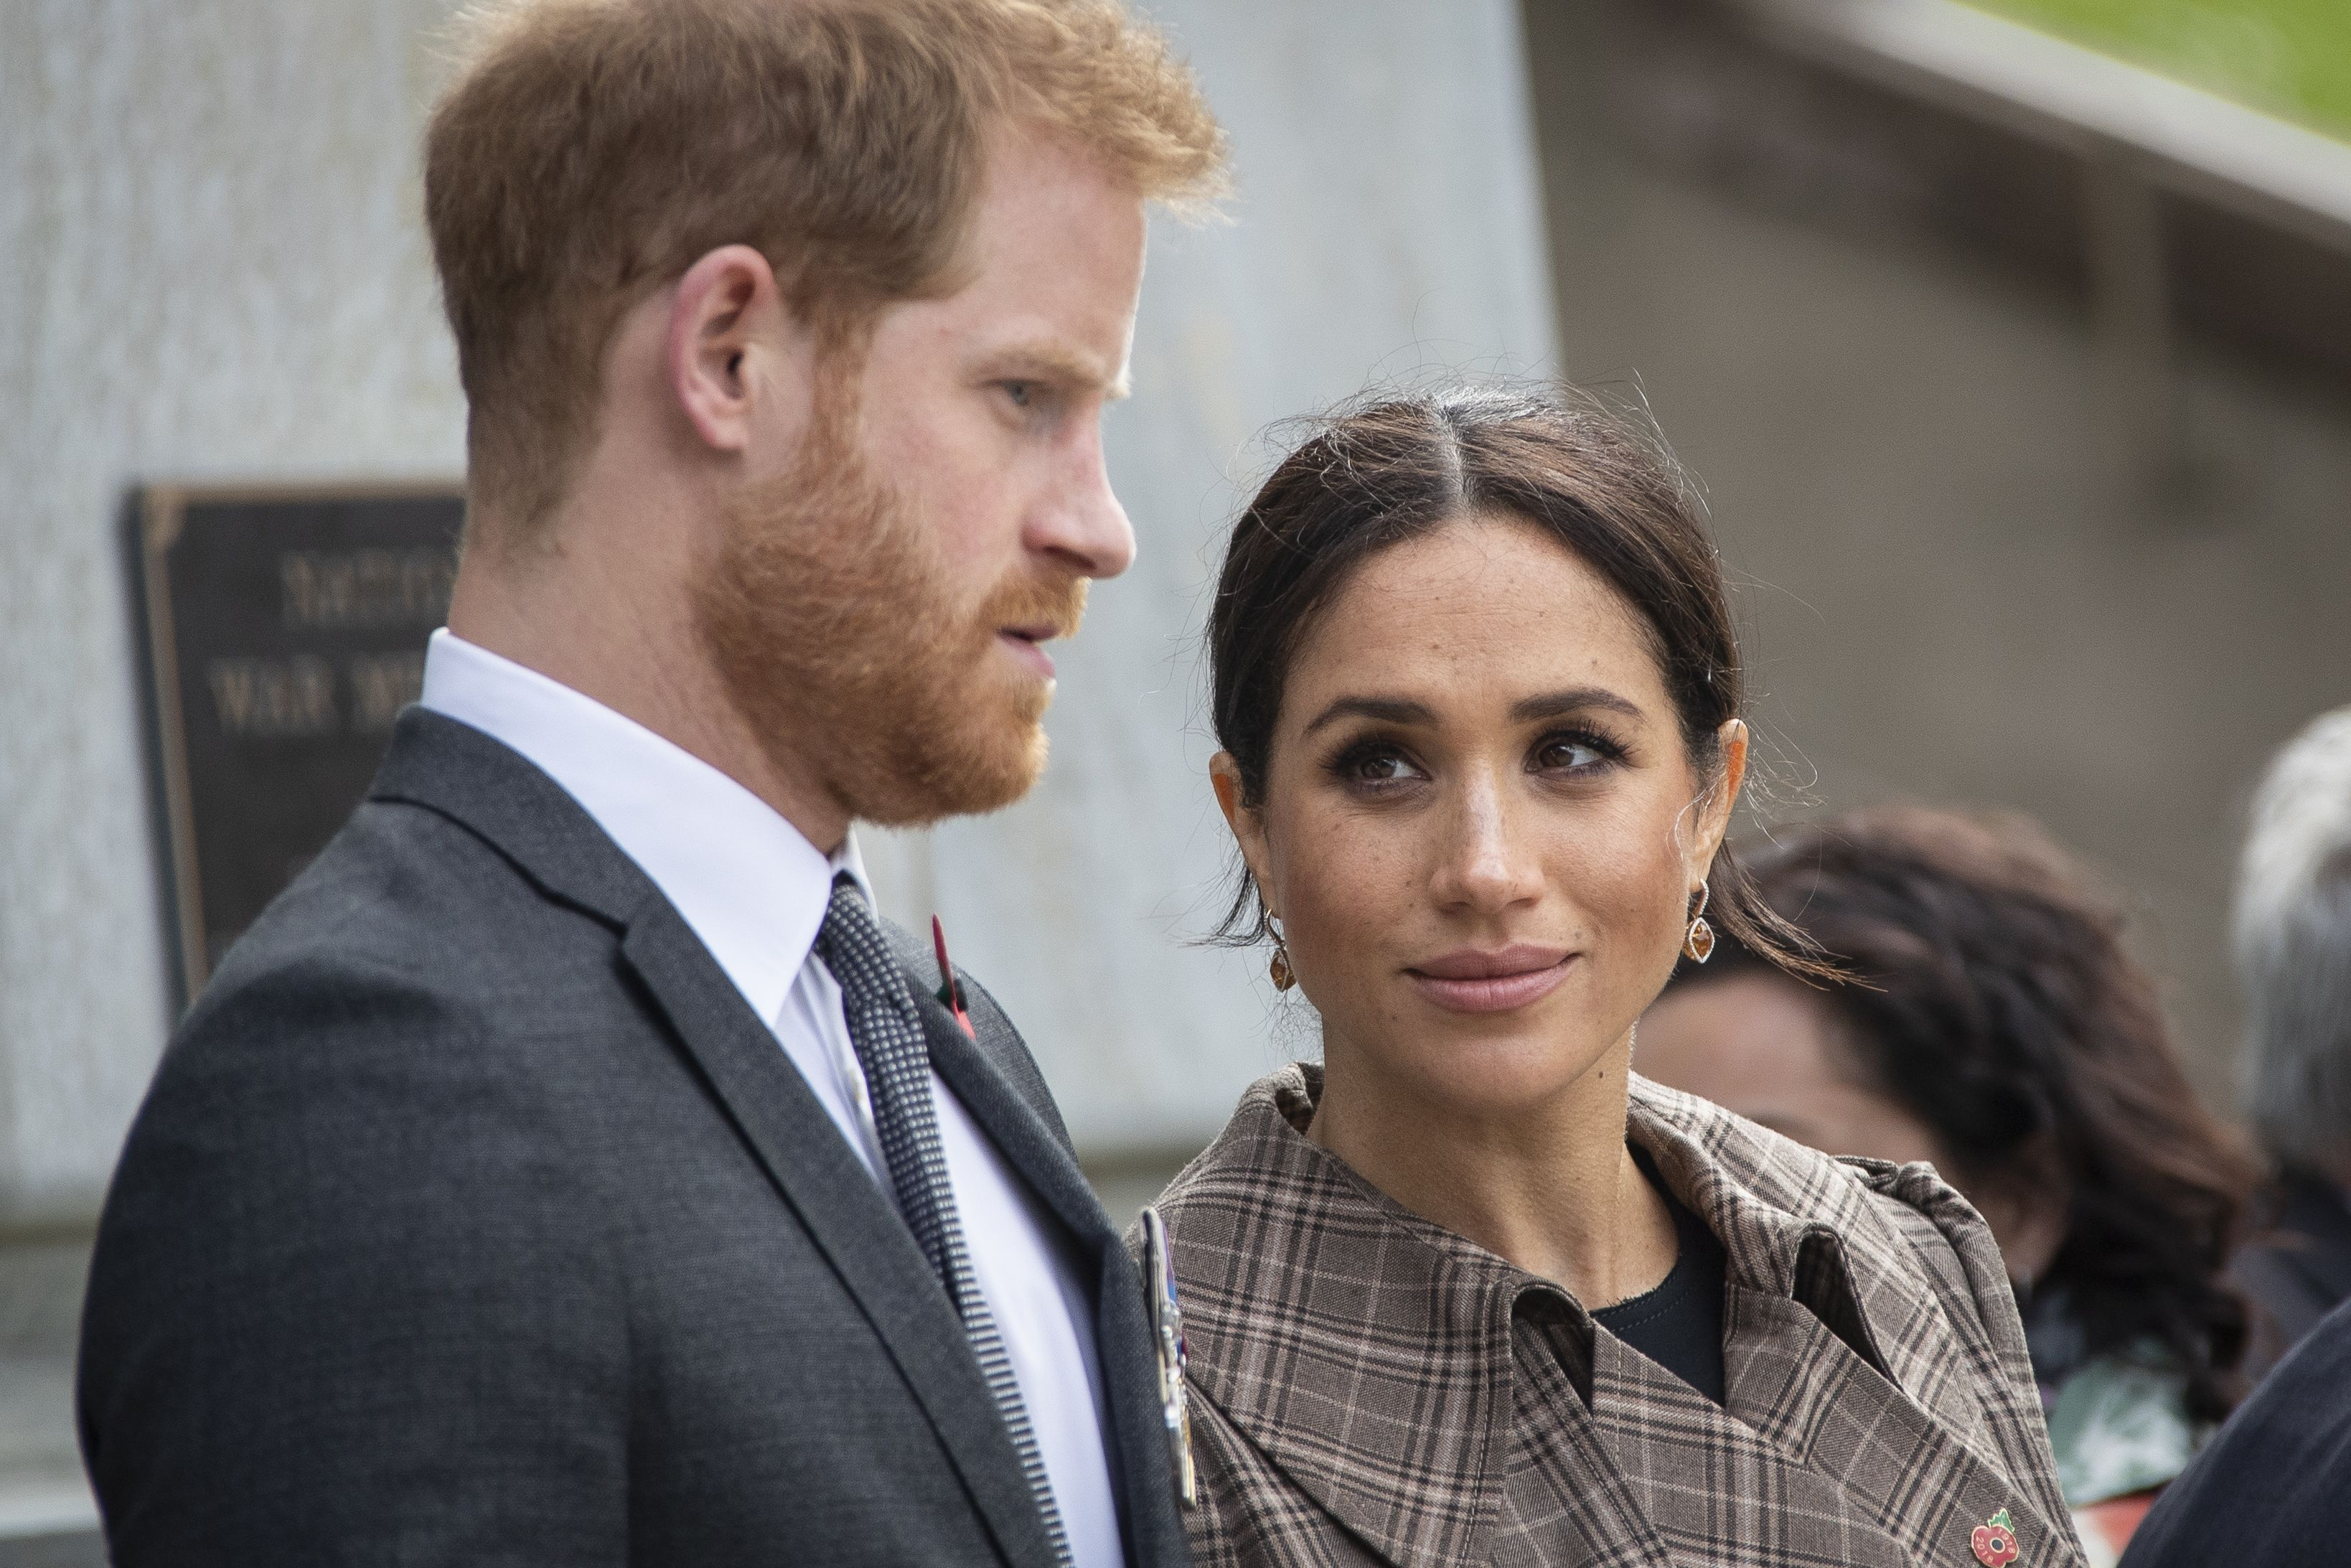 Meghan Markle and Prince Harry Laid Off Their 15-Member London Staff